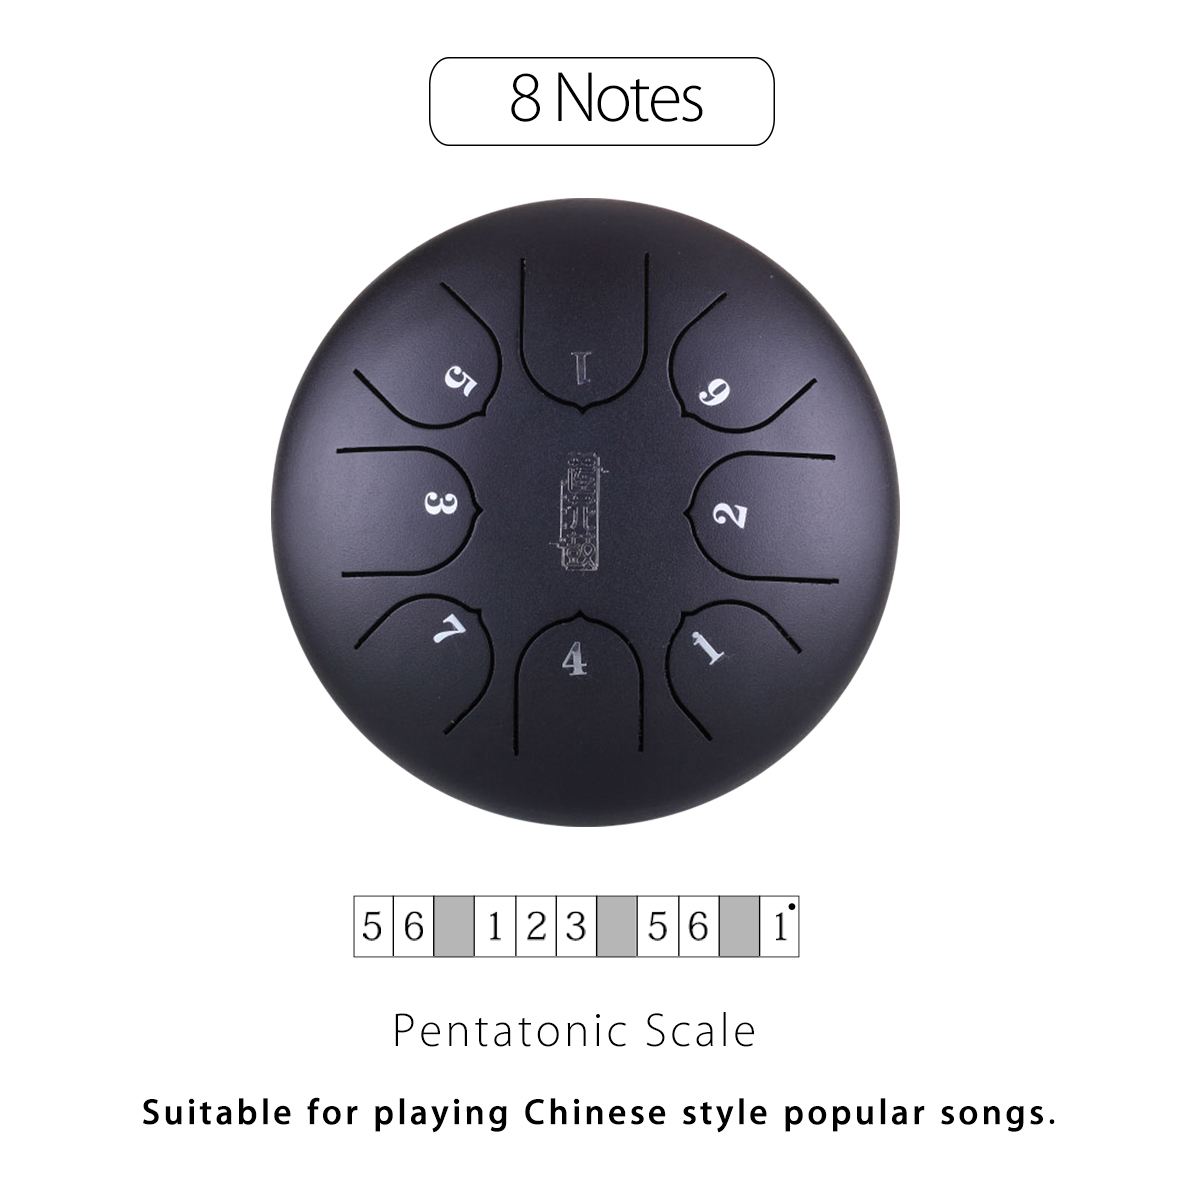 medium resolution of  secondary tuning 99 pitch can be used as a musical instrument perfect for yoga and meditation help you relax rb9kflvoe6sab3 xaatz1pfskmk398